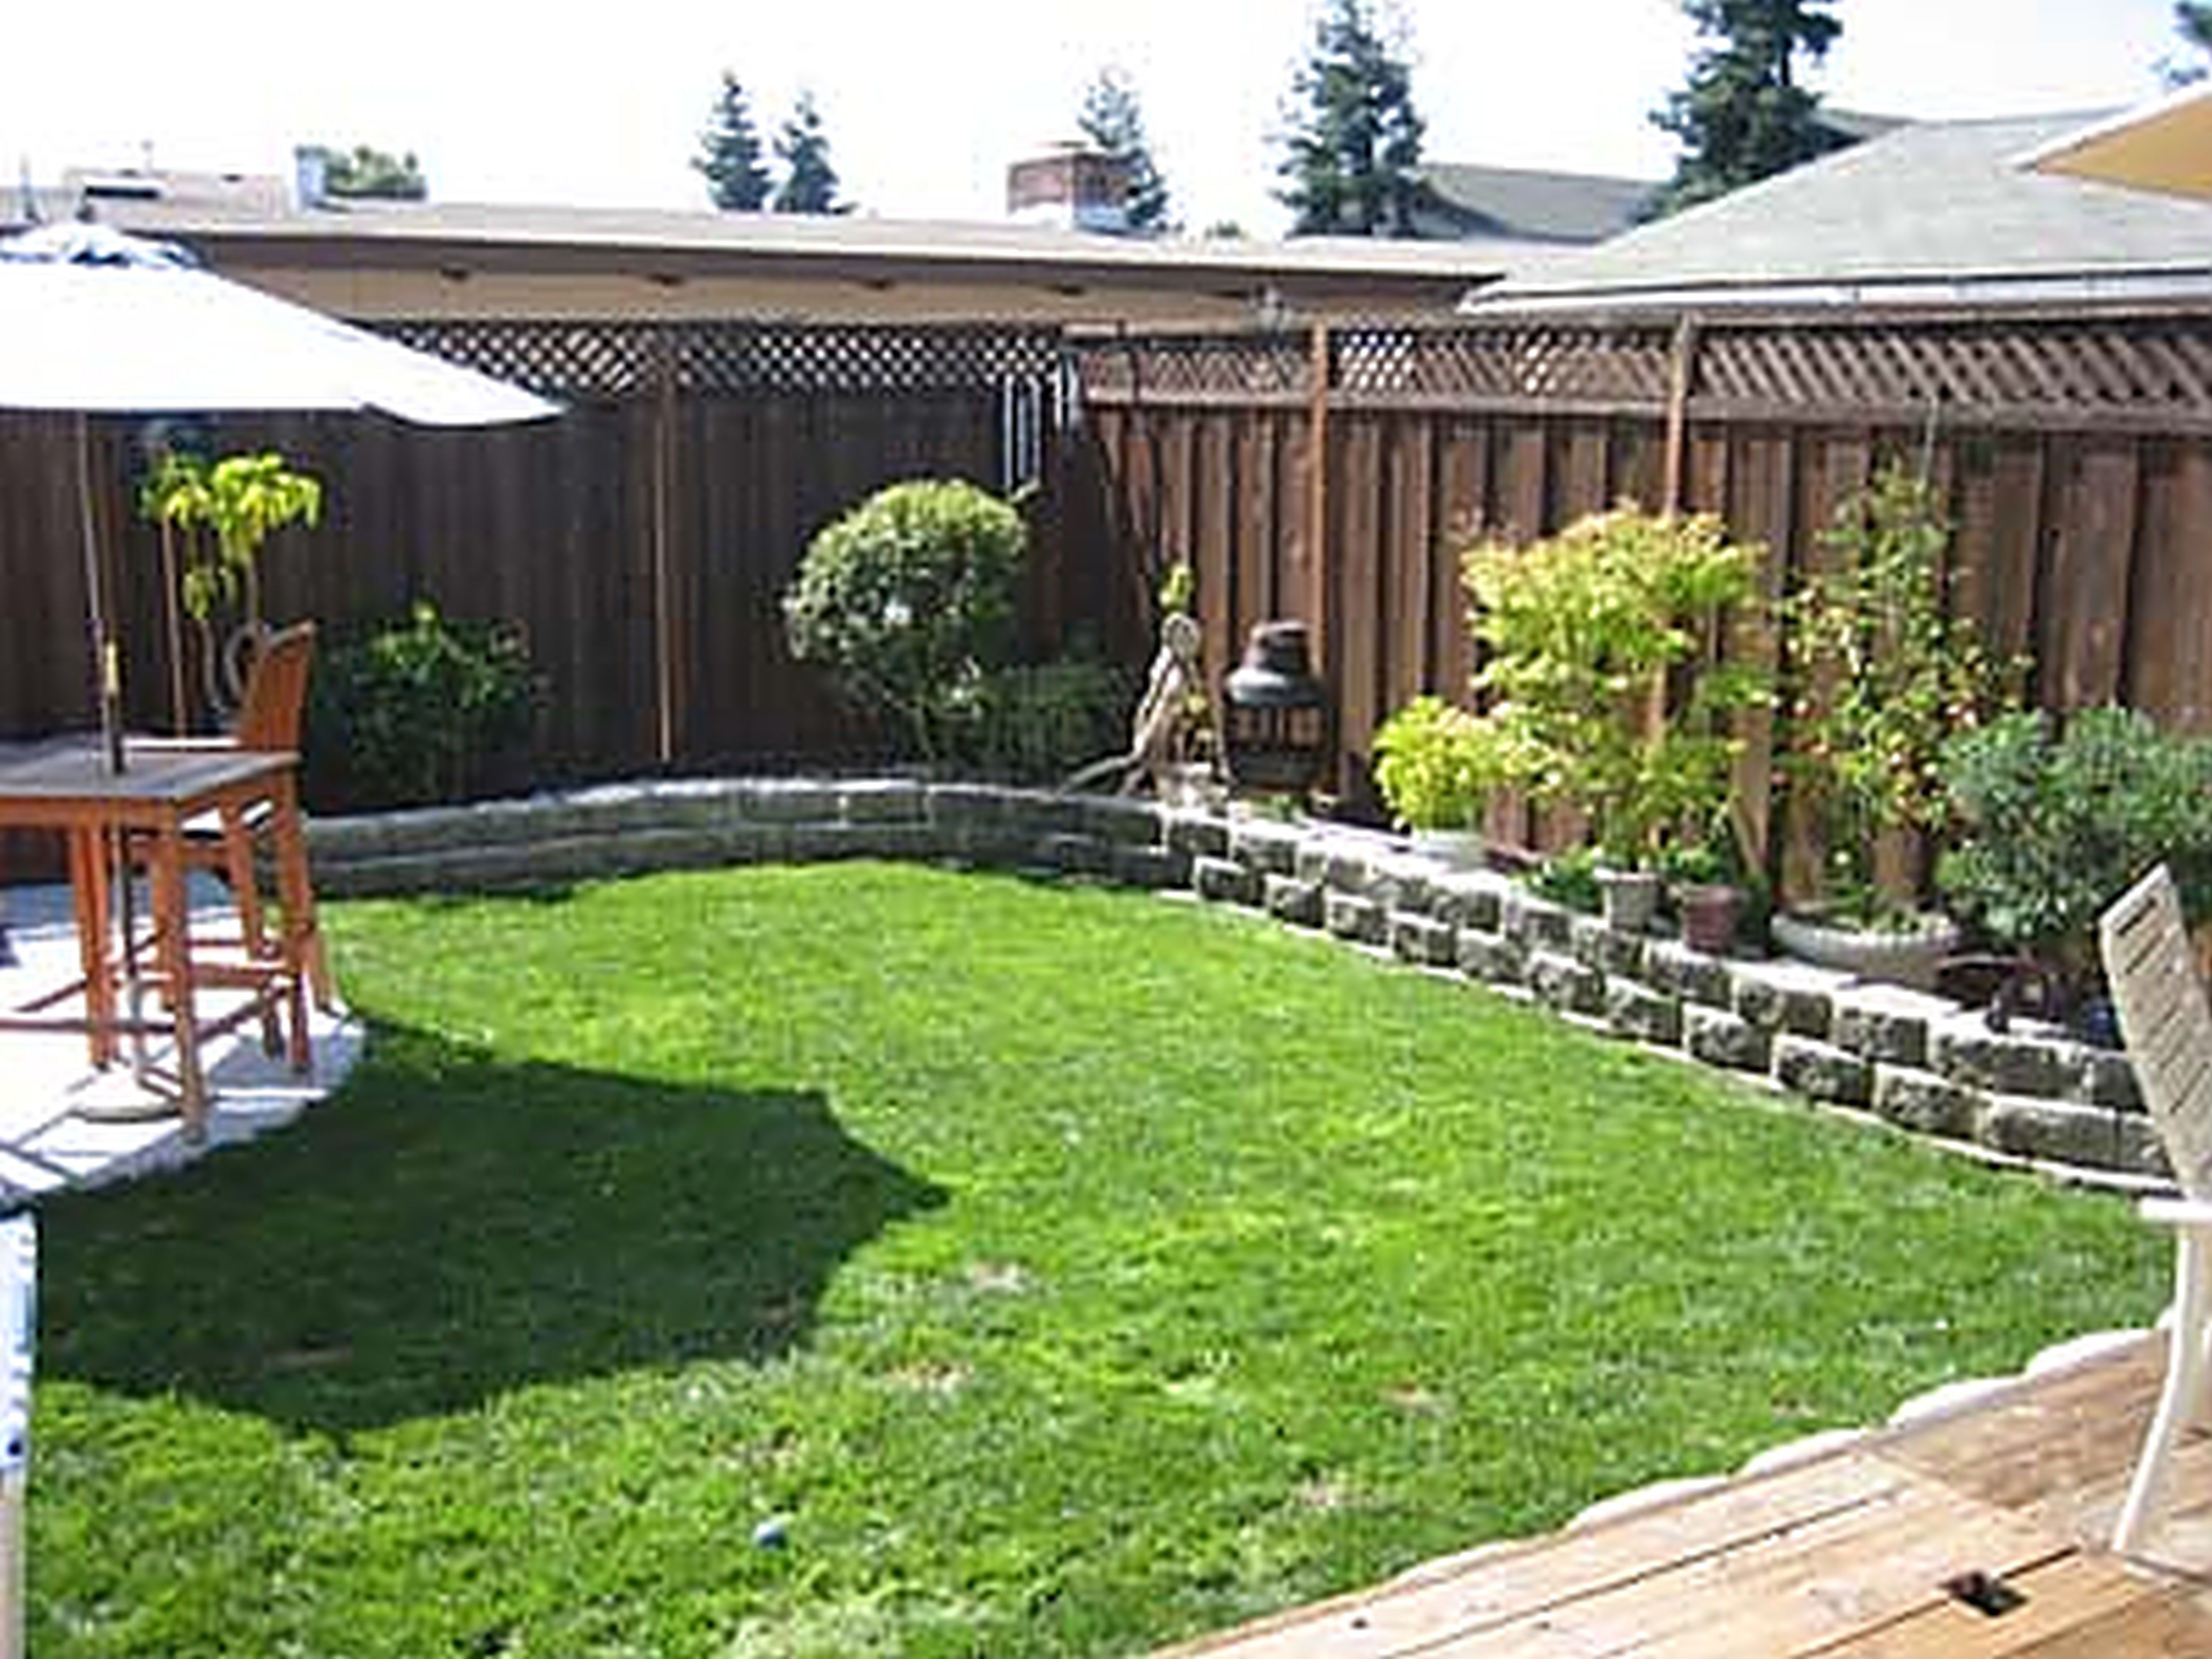 Backyard Diy Garden Ideas On A Budget Narrow Cheap Water Fountains with 14 Some of the Coolest Initiatives of How to Makeover Low Budget Backyard Landscaping Ideas